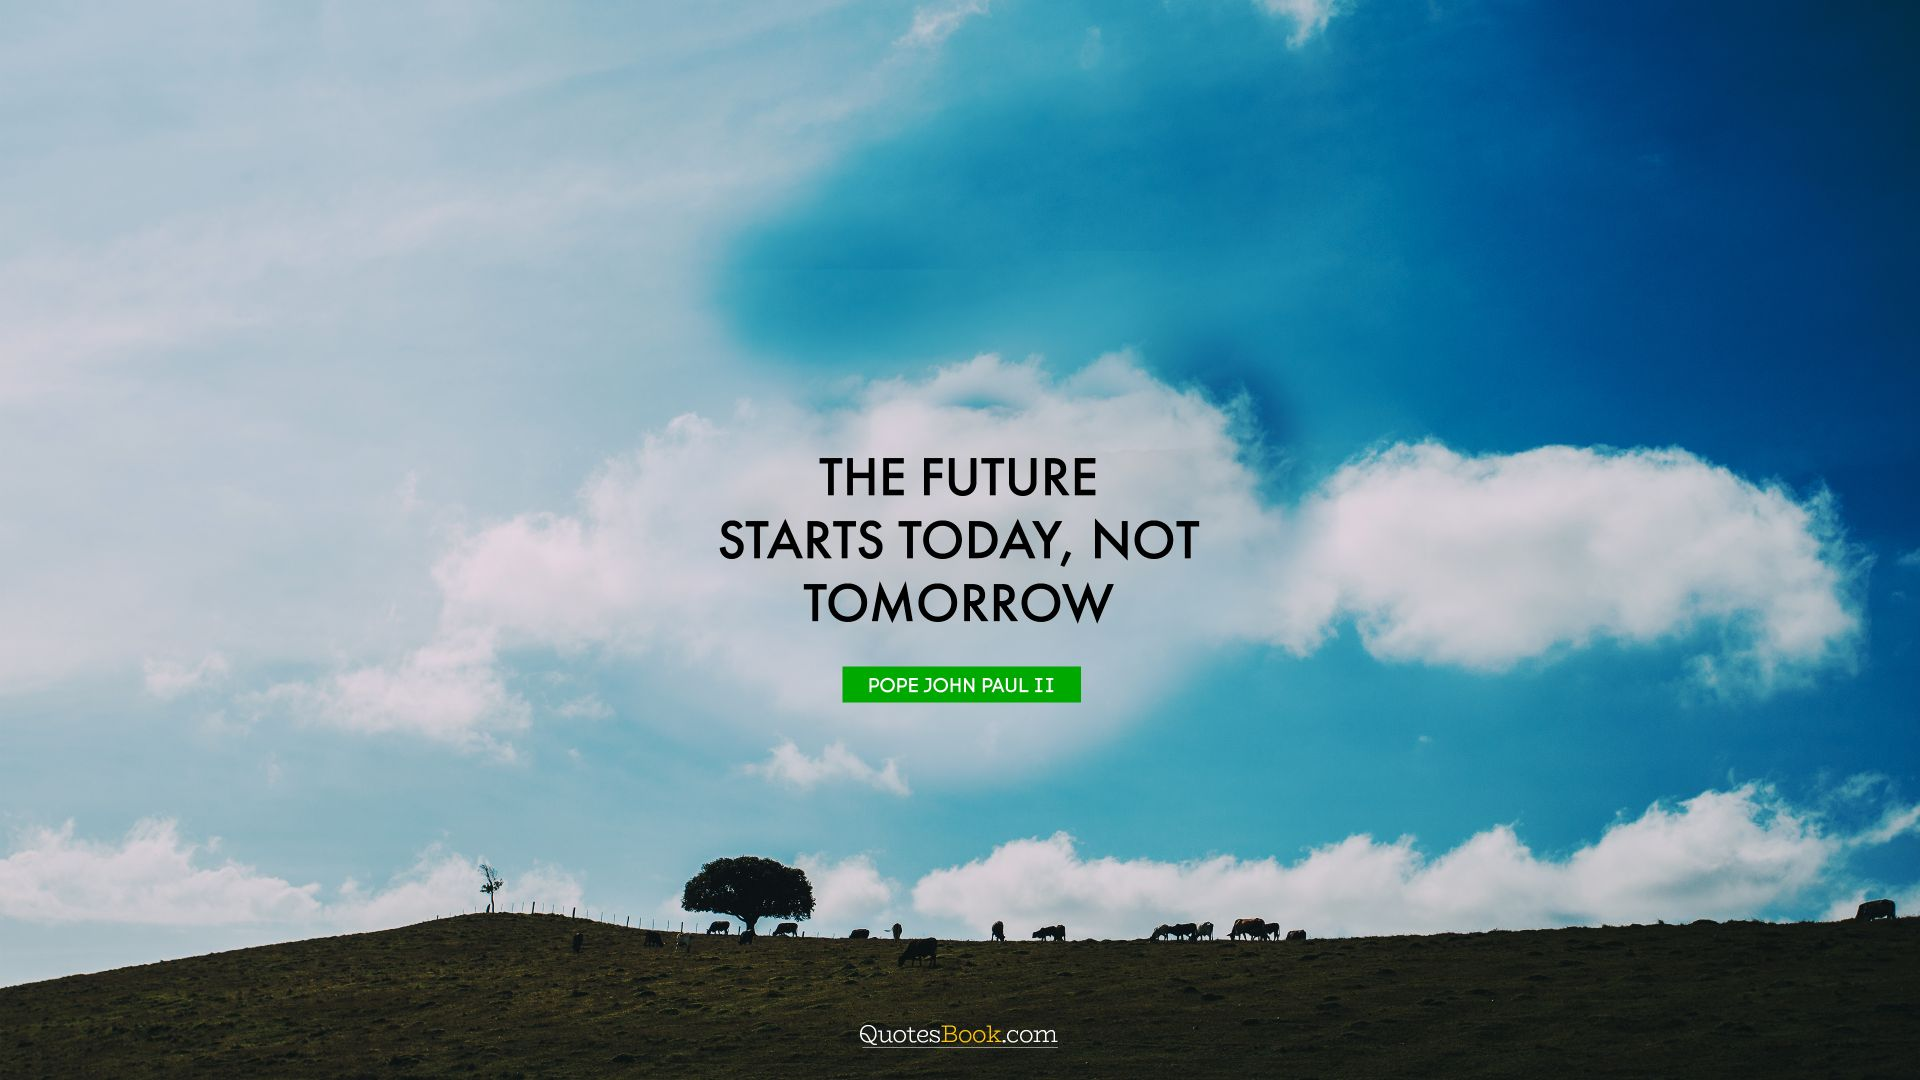 The future starts today, not tomorrow. - Quote by Pope John Paul II